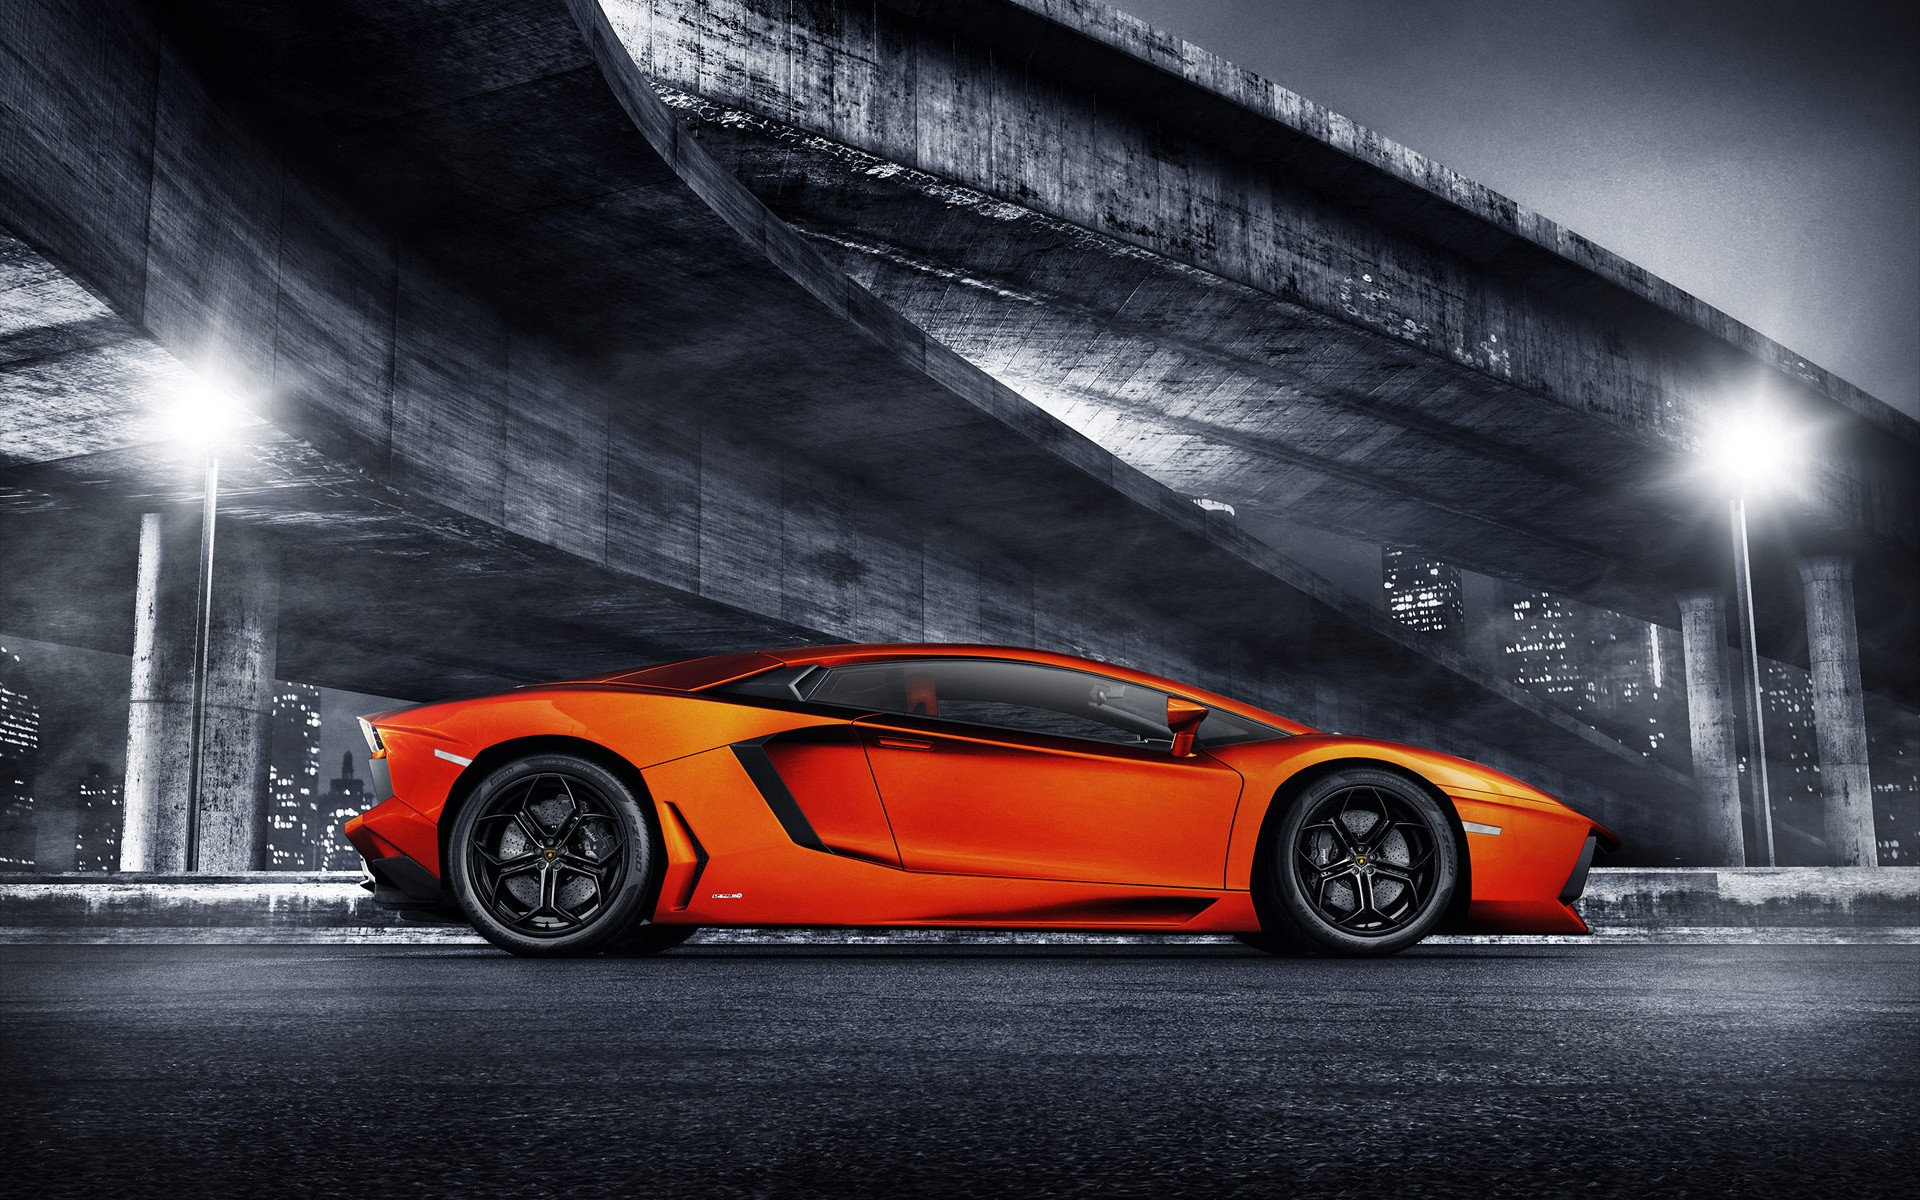 Mazda Of Orange >> Orange Lamborghini Aventador Wallpaper | HD Car Wallpapers ...